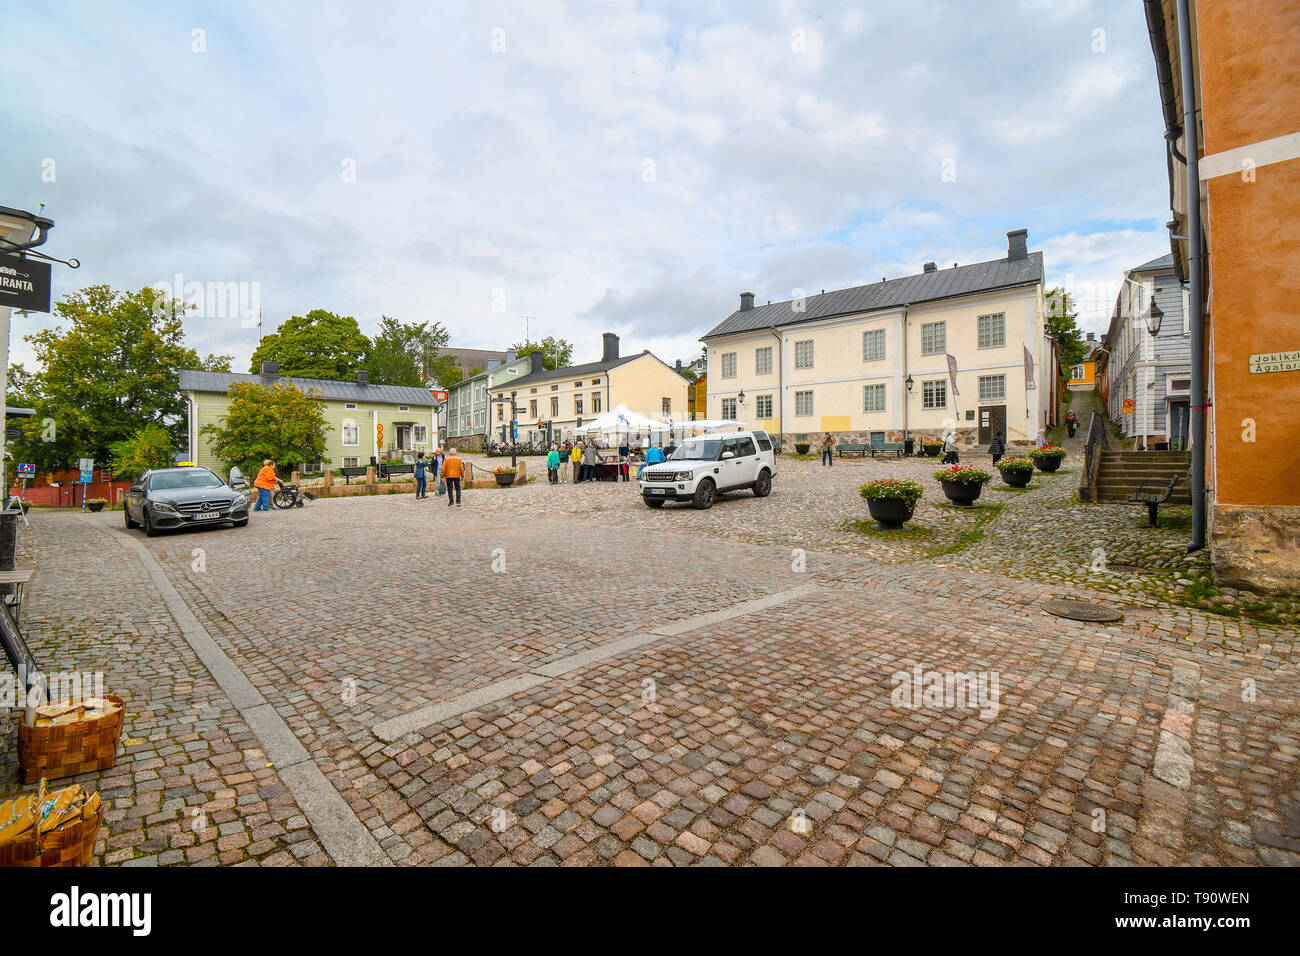 Tourists and local Finns begin to set up market stalls in the town square in front of the Porvoo Museum in the medievla village of Porvoo, Finland Stock Photo